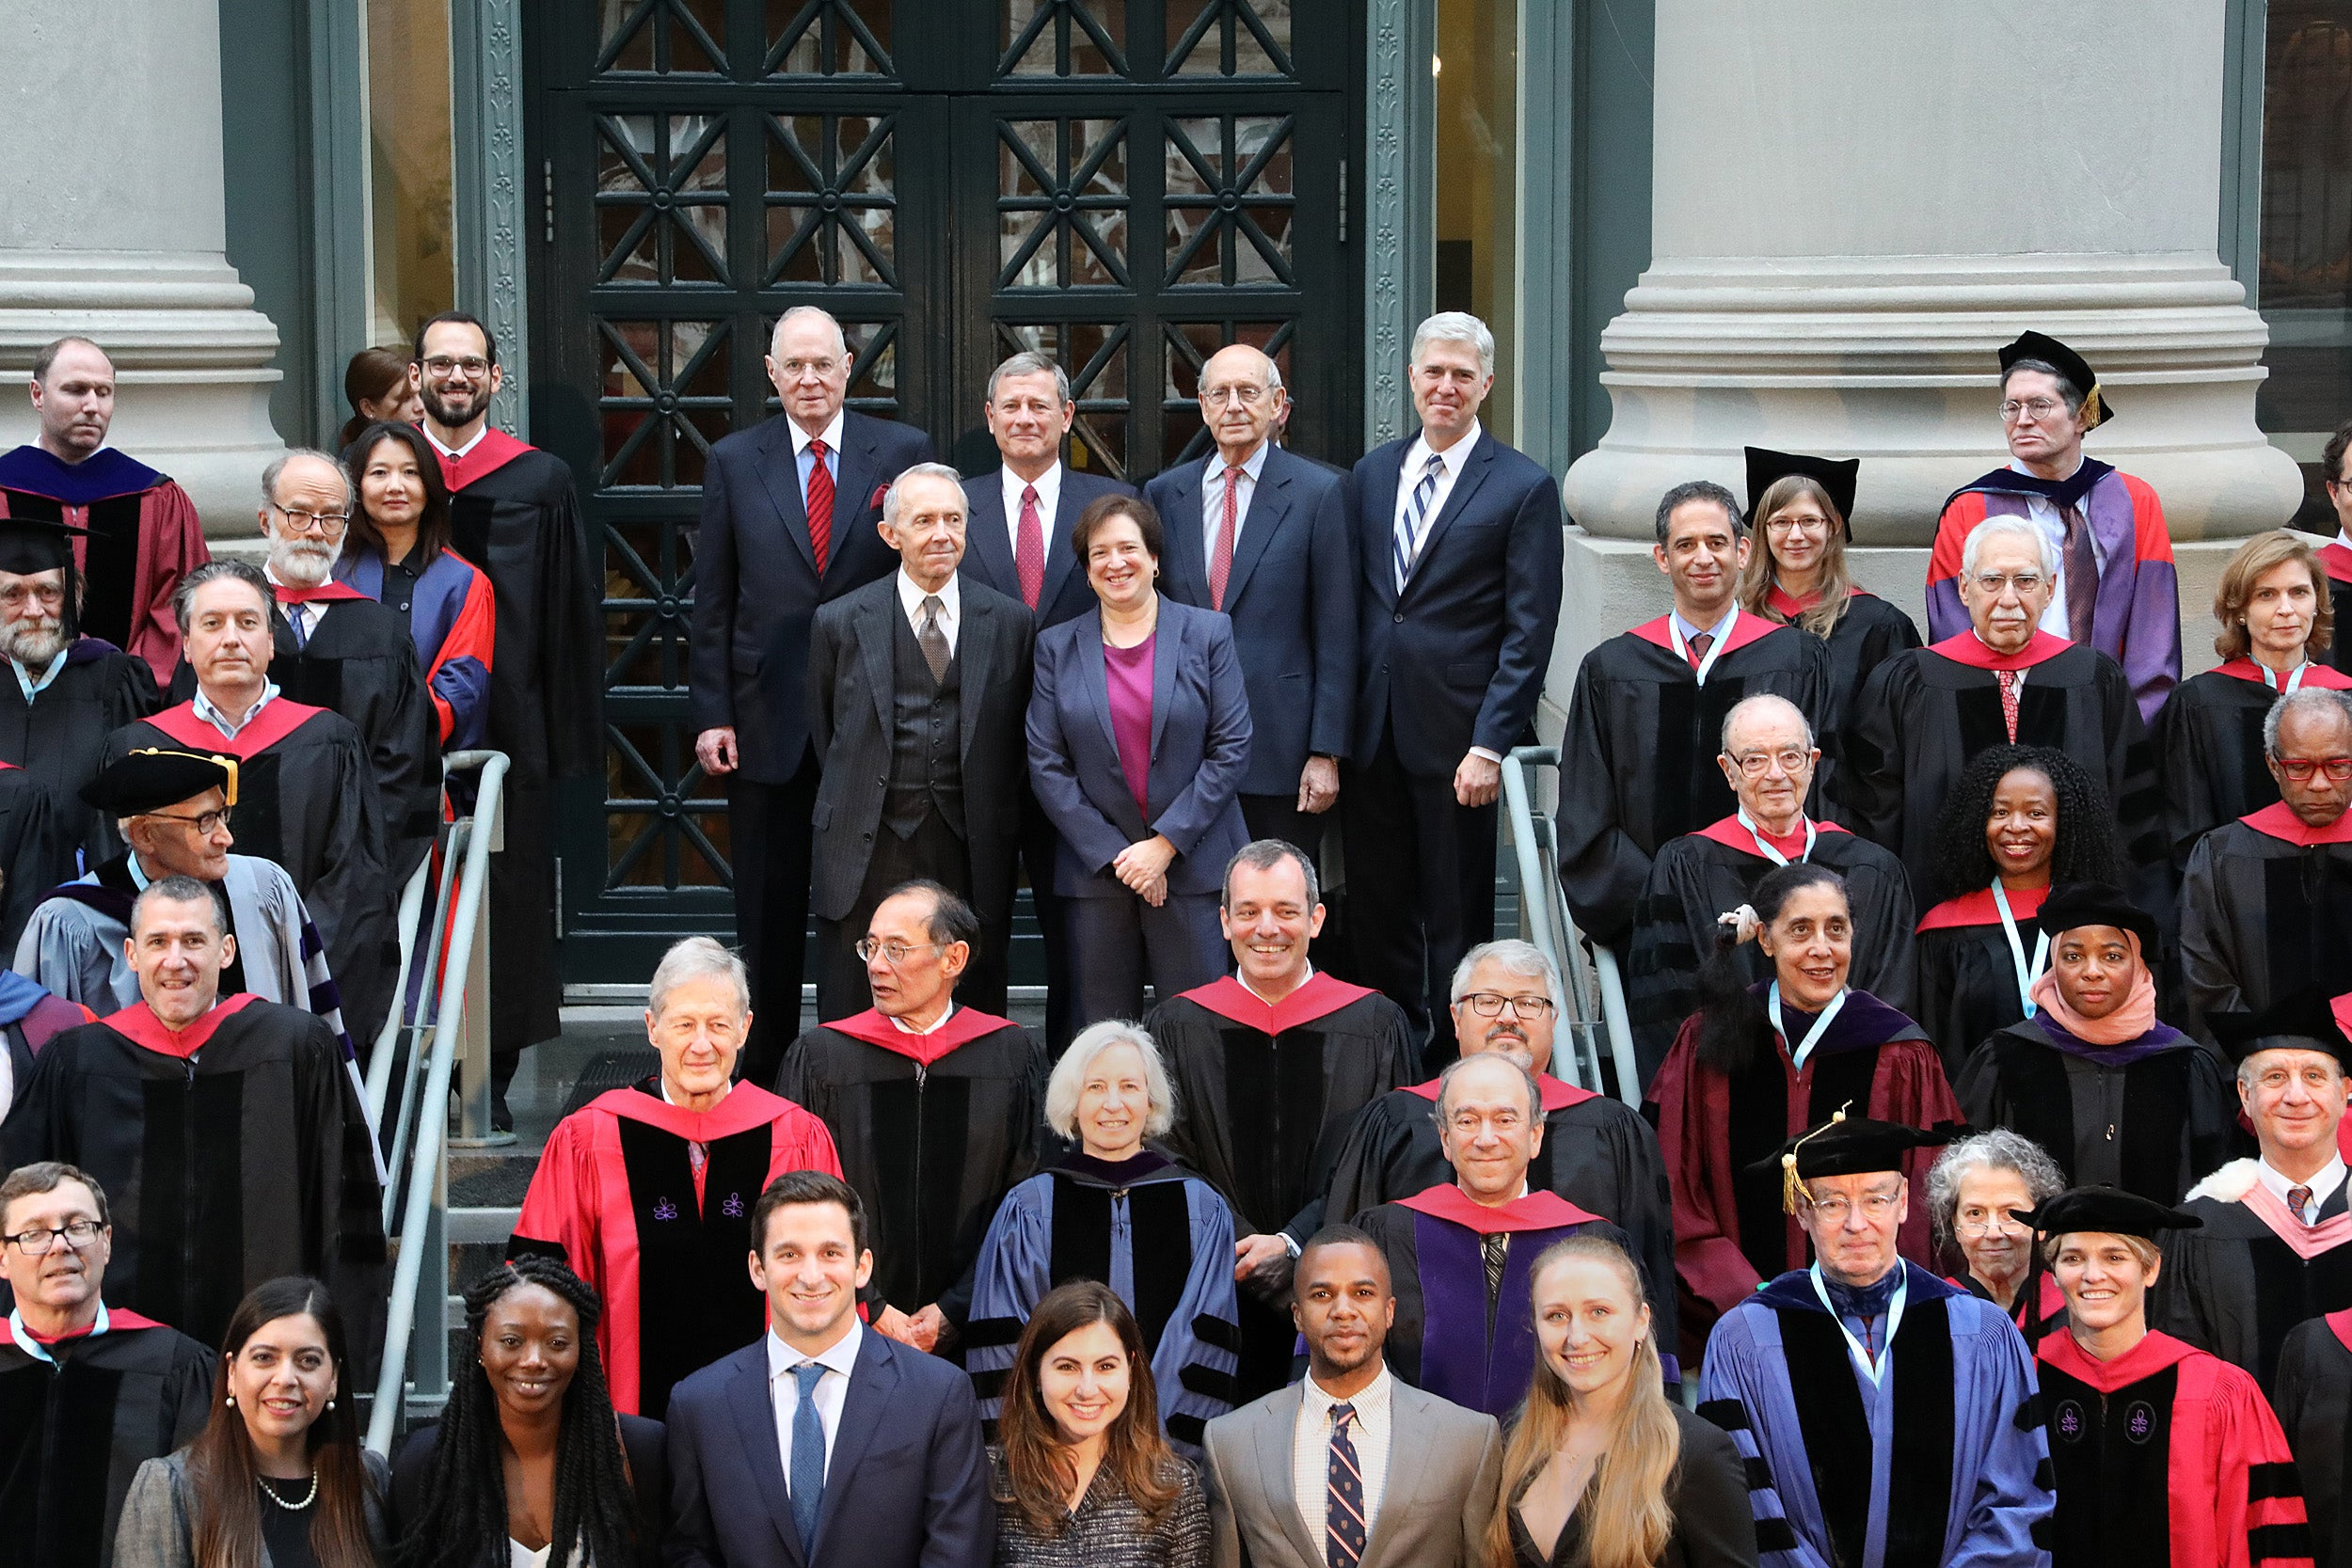 On the steps of Langdell Library, Harvard Law School faculty surround six Supreme Court justices.